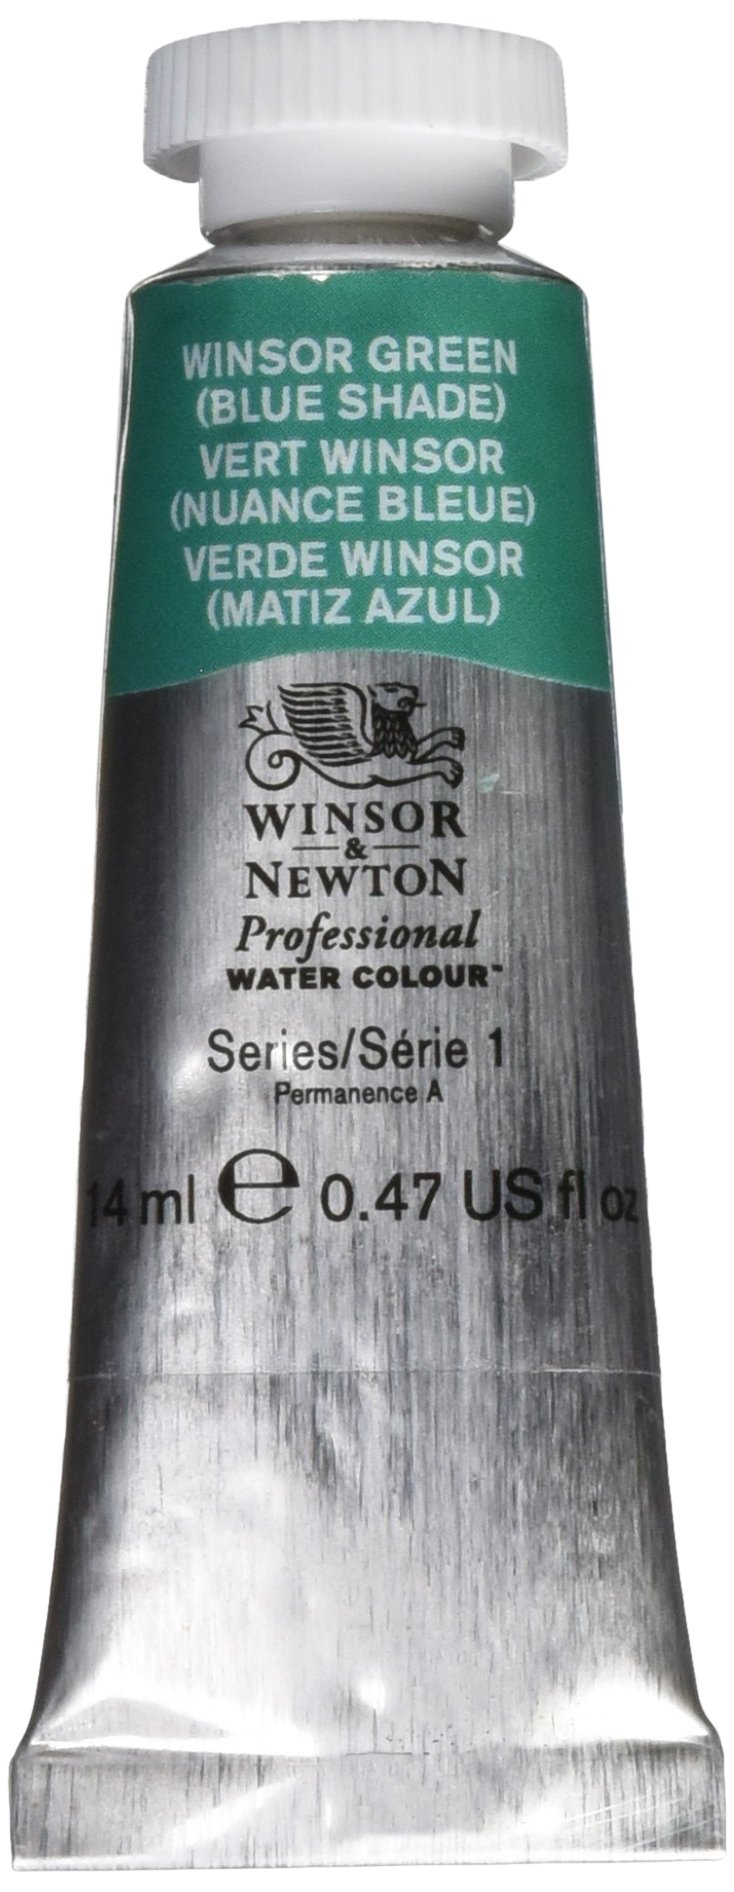 Colart Americas 0105719 Pro Watcol 14Ml.Wins Newtgreenblue Shade by Colart Americas